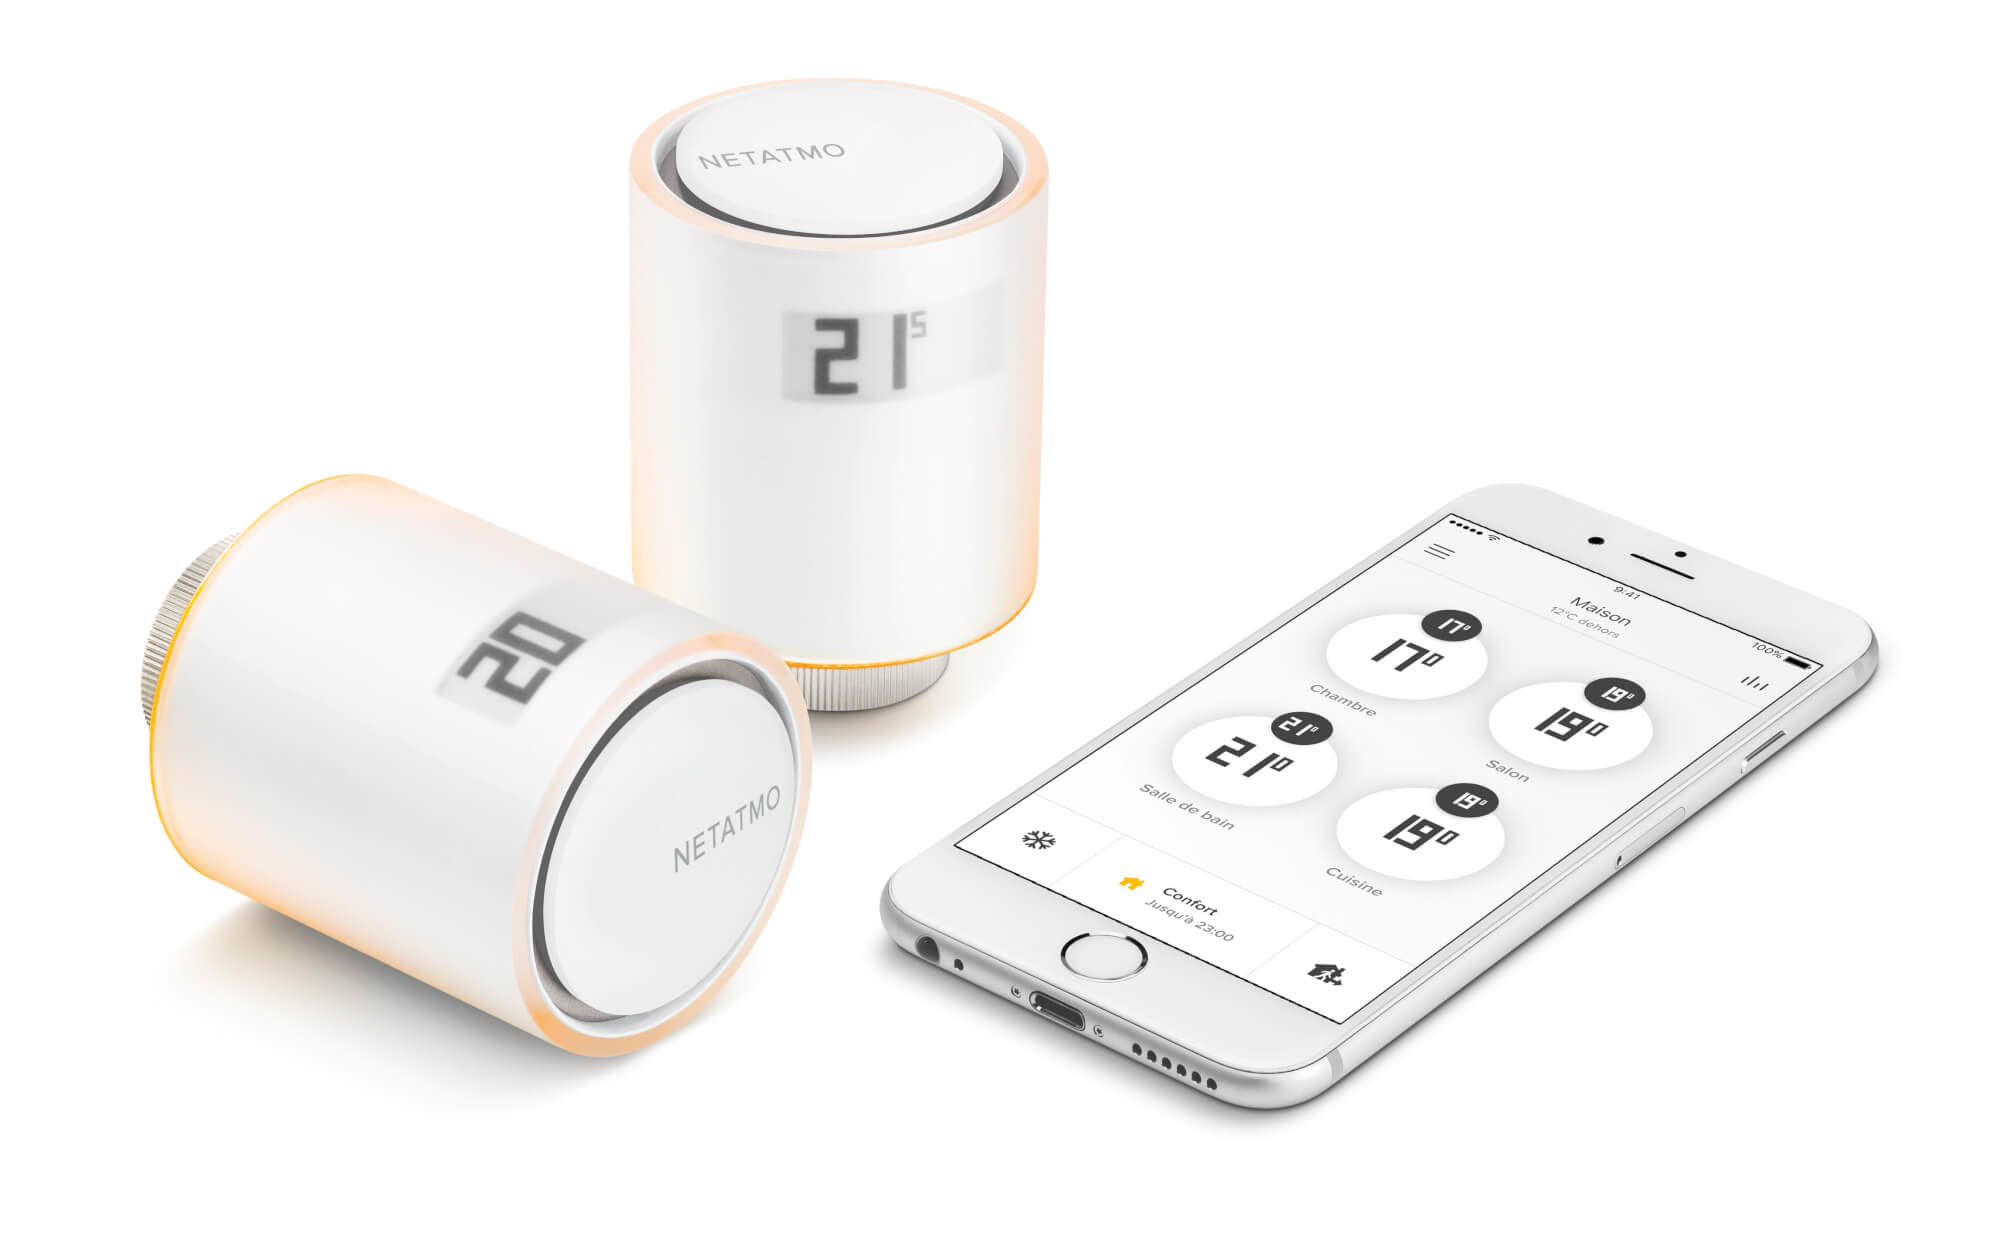 Netatmo by Starck, smart radiators valves (NETATMO)